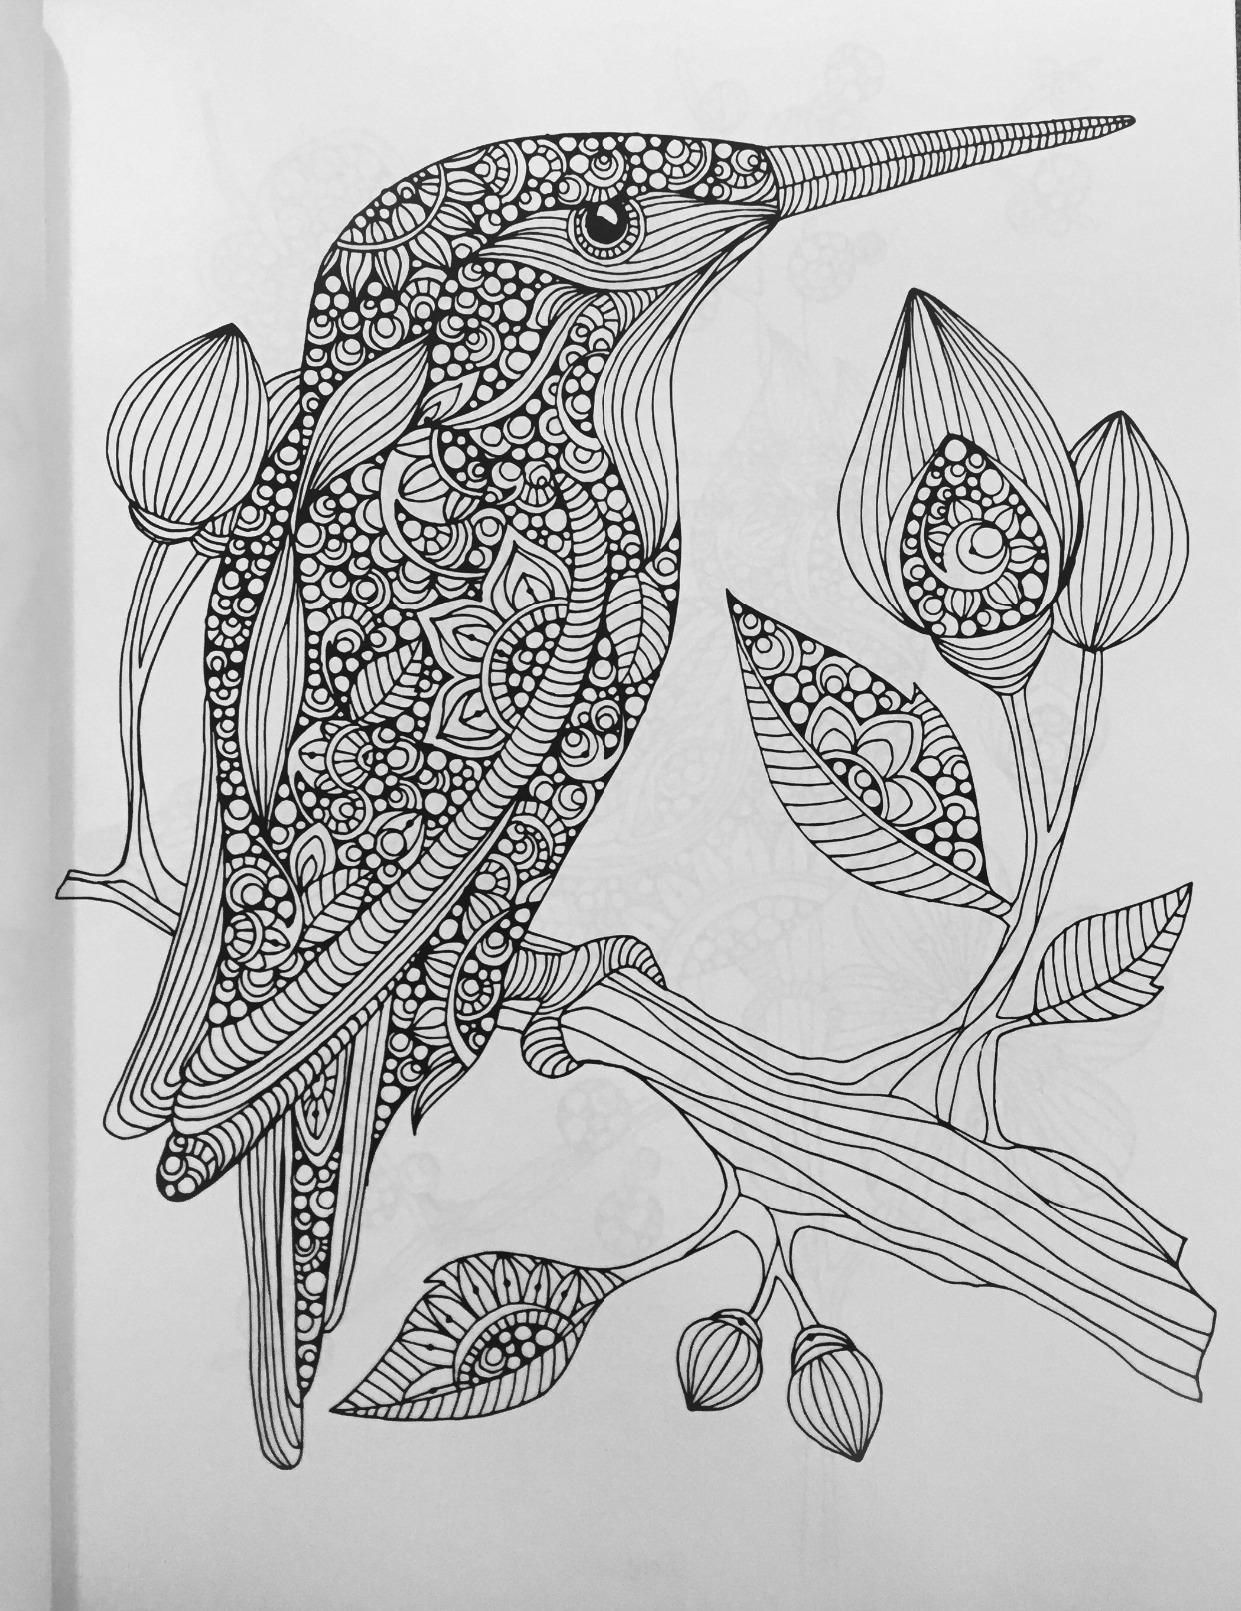 creative coloring birds art activity pages to relax and enjoy | Amazon.com: Creative Coloring Birds: Art Activity Pages to ...